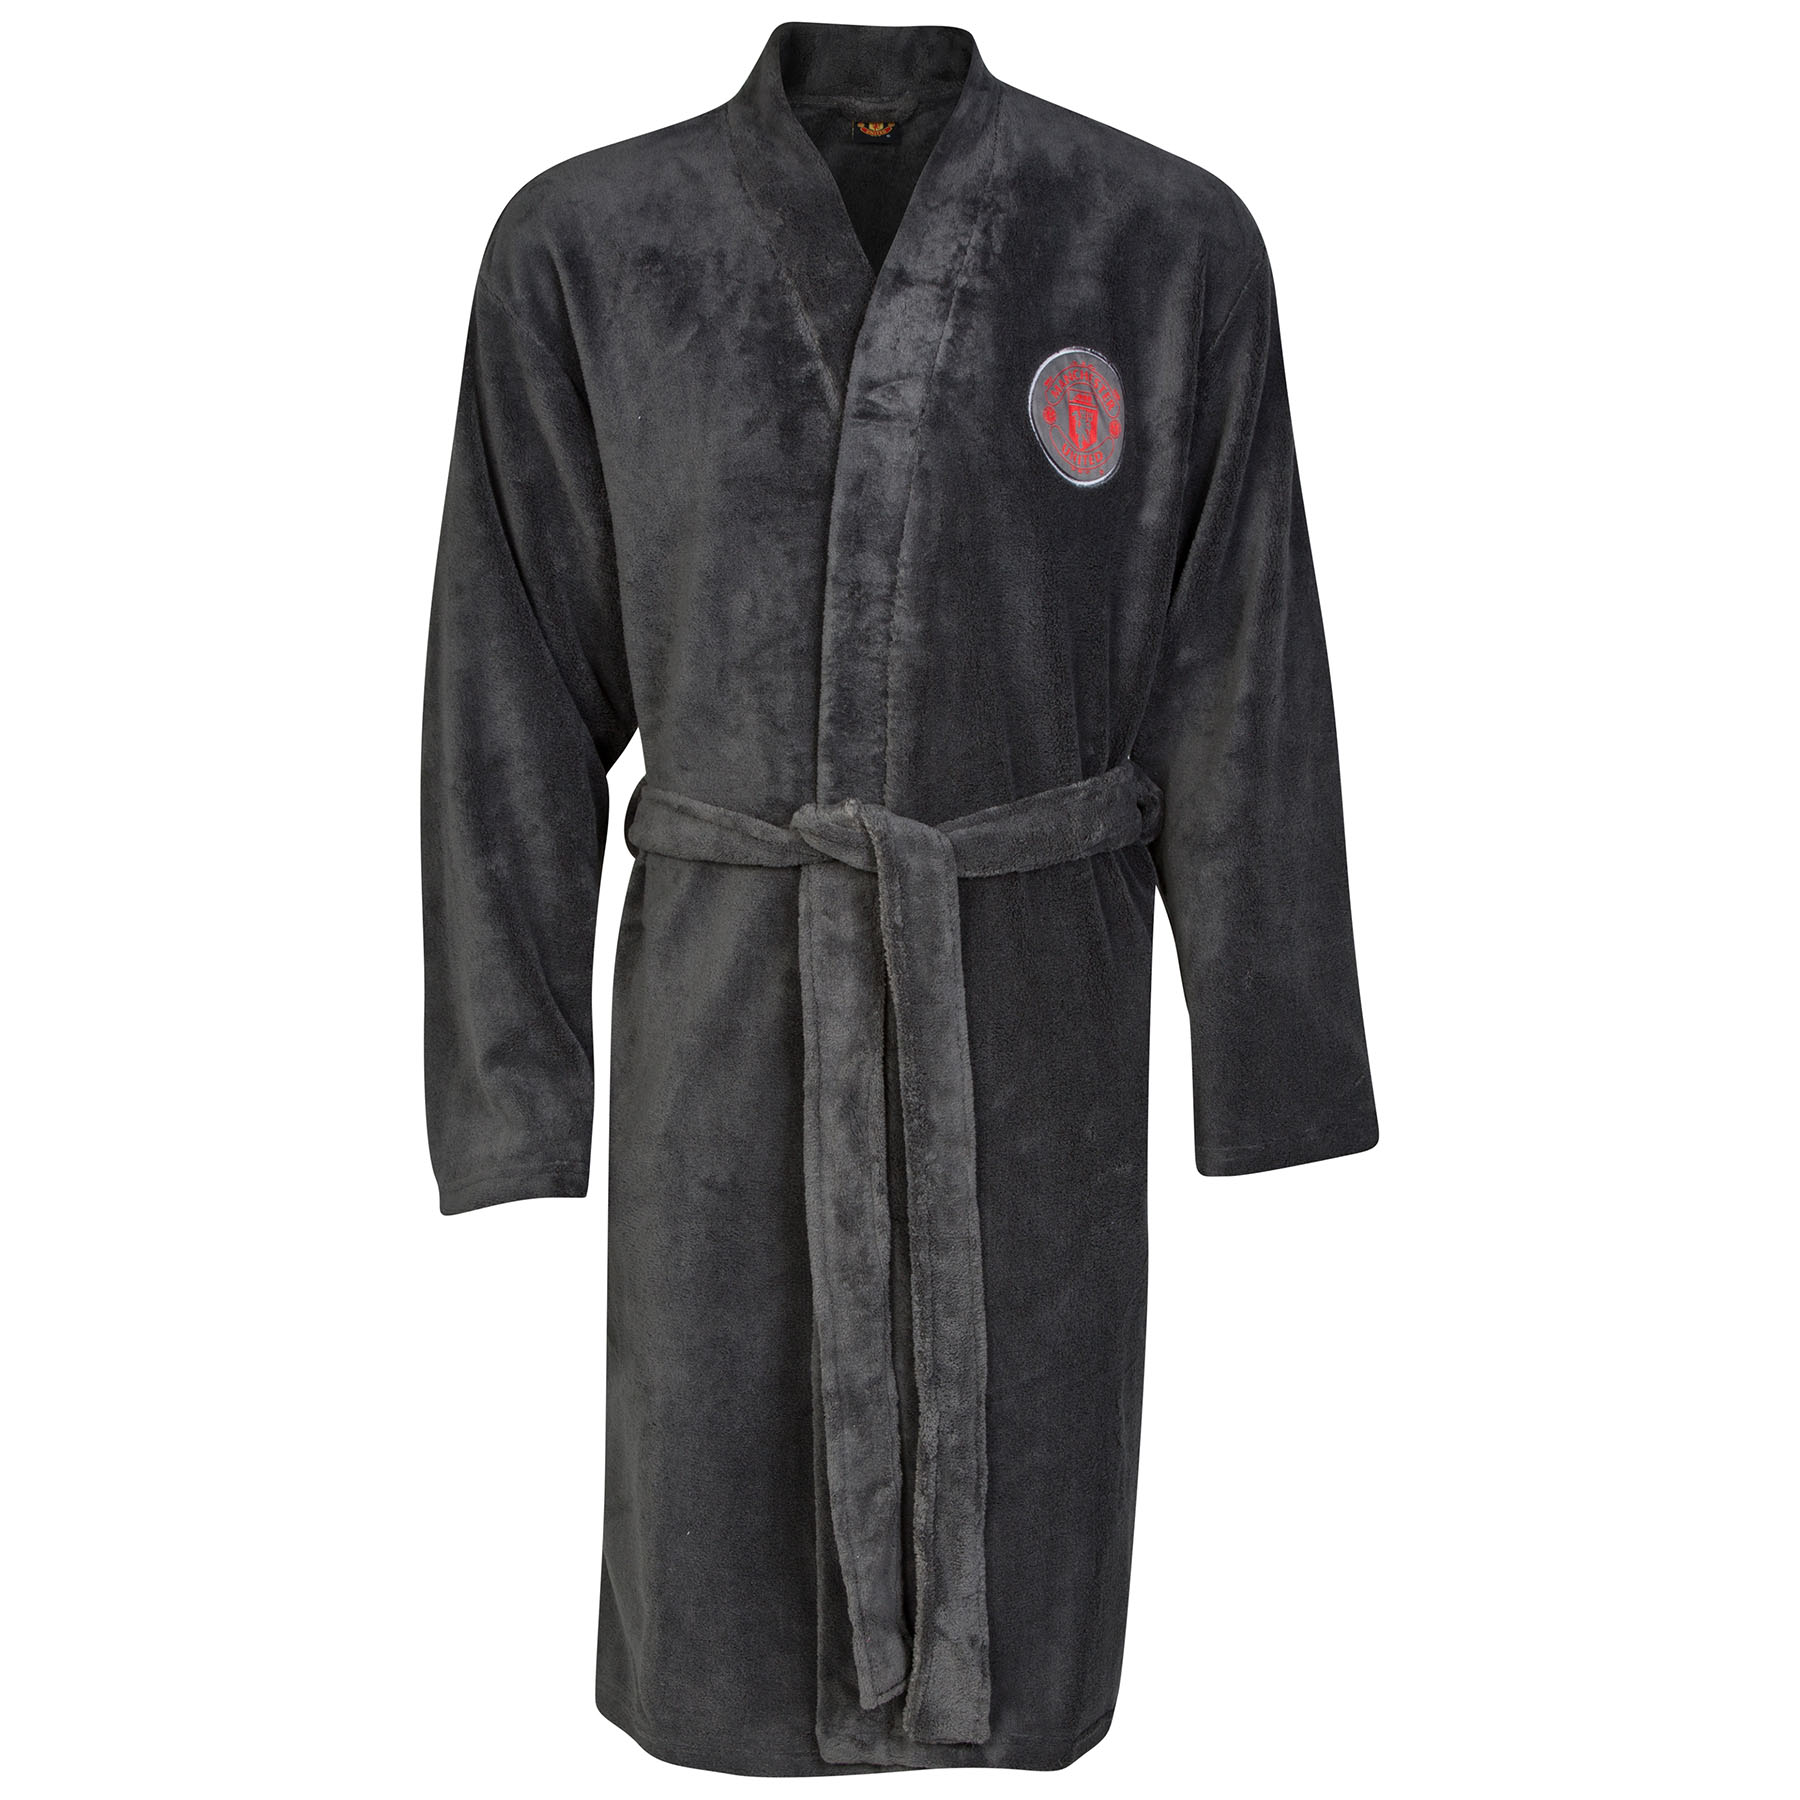 Manchester United Crest Robe - Charcoal - Older Boys